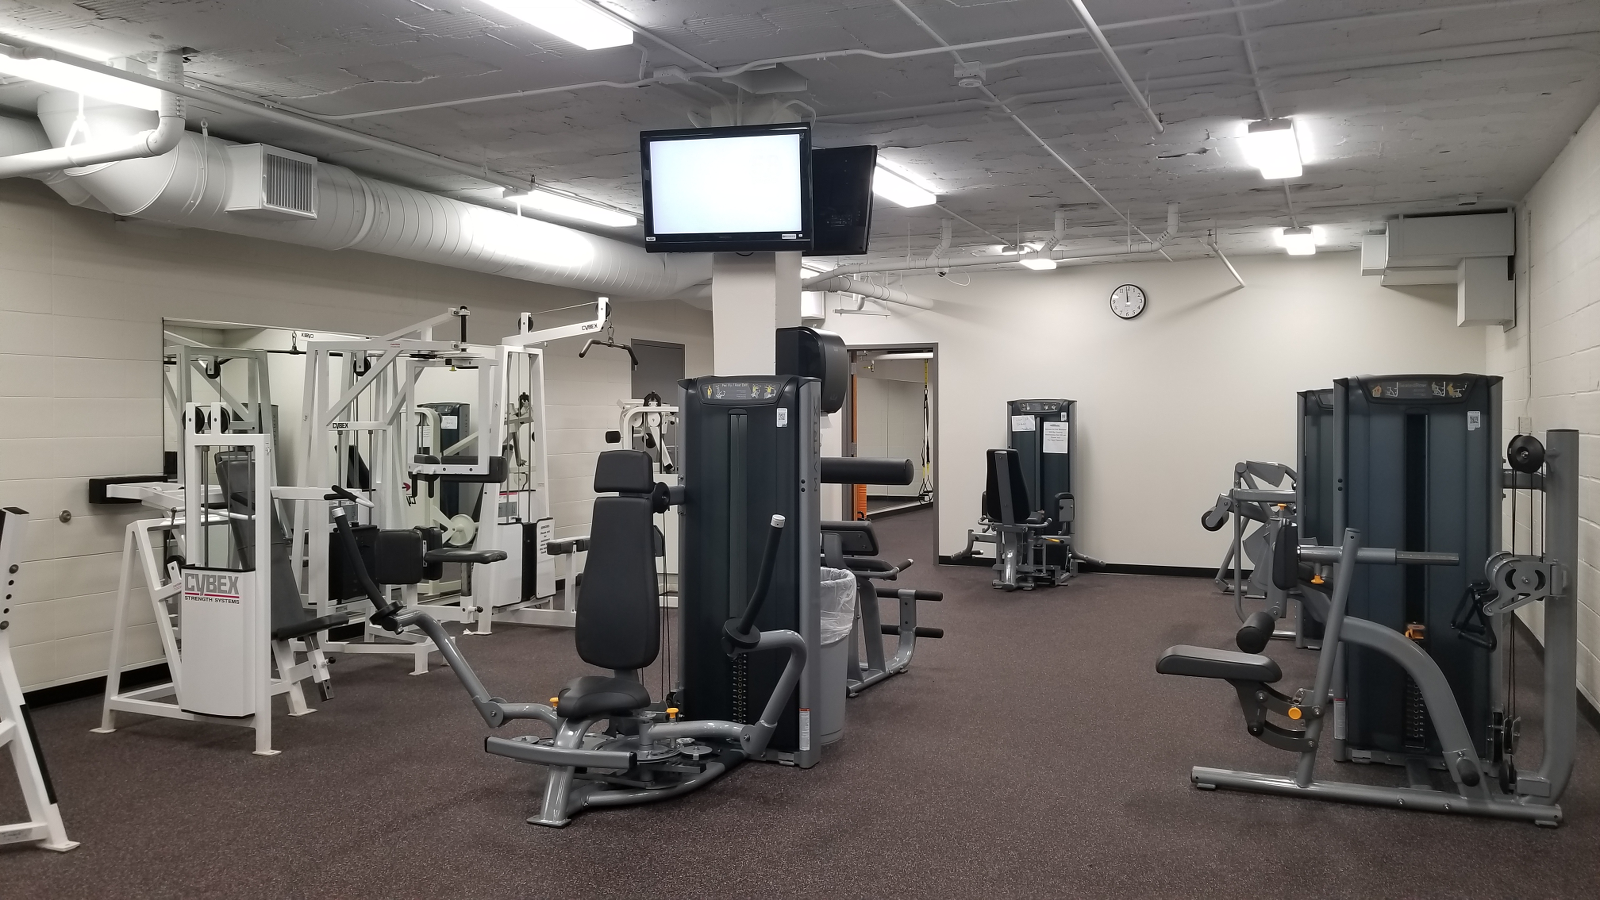 Weight room, weight machine area.